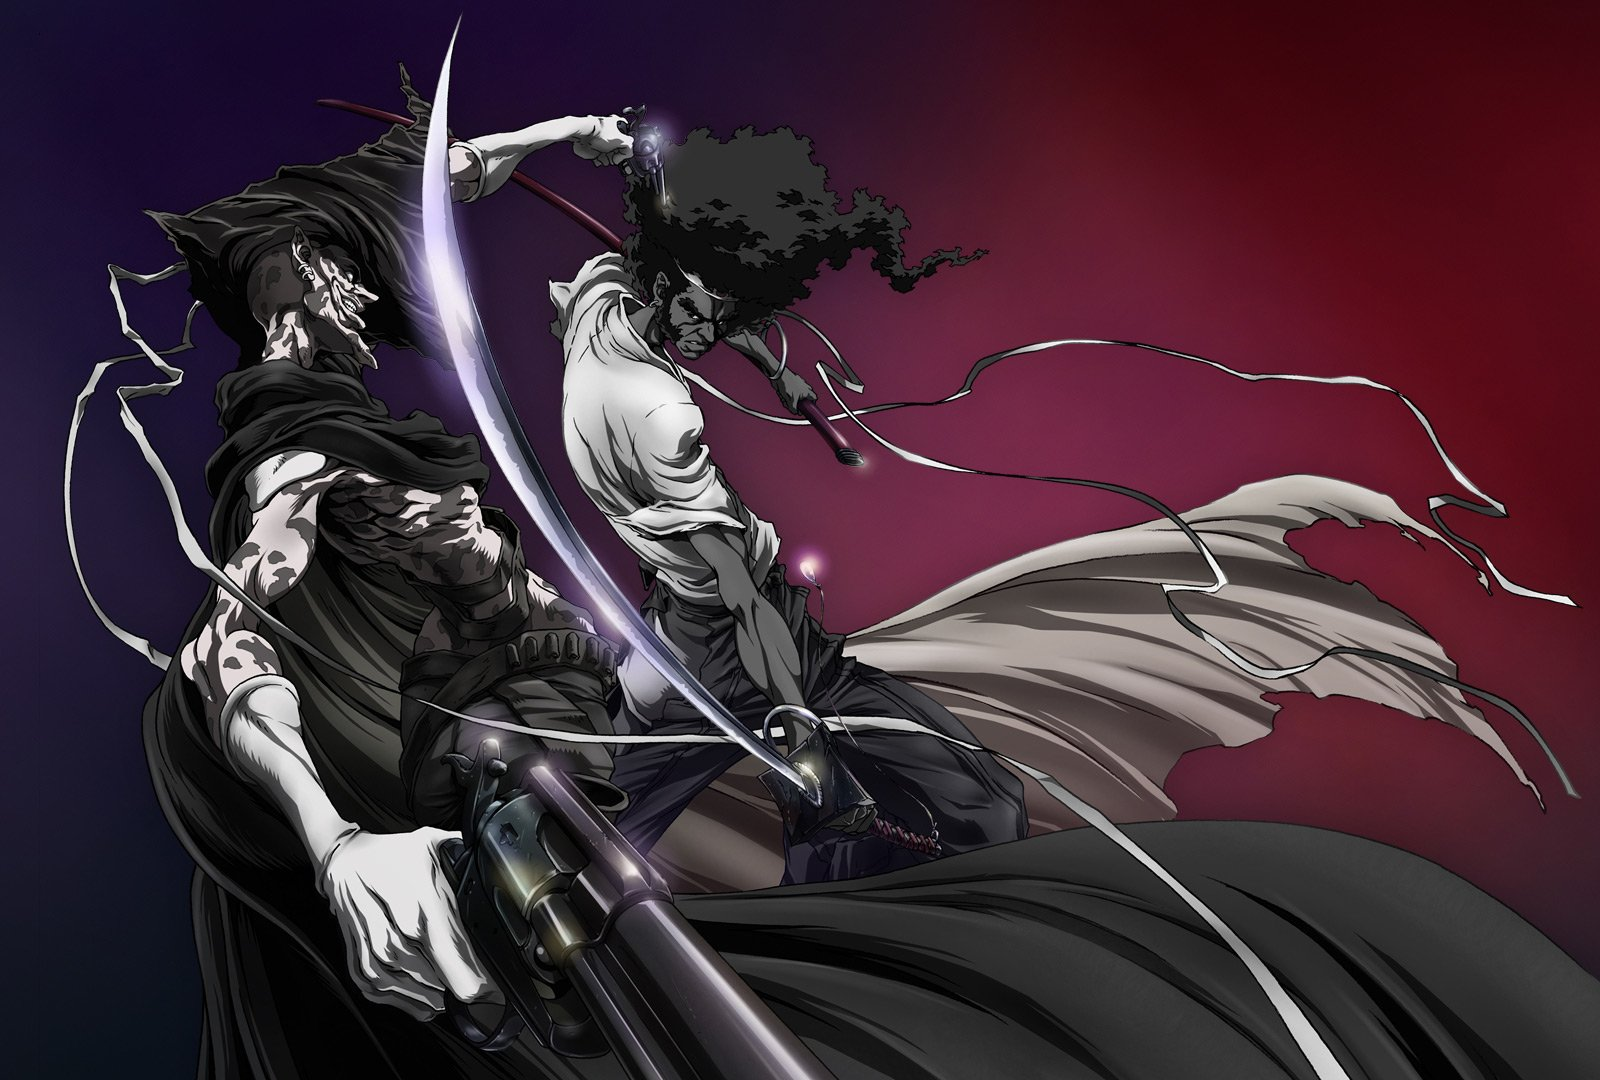 Afro Samurai Wallpaper and Background Image | 1600x1080 ...